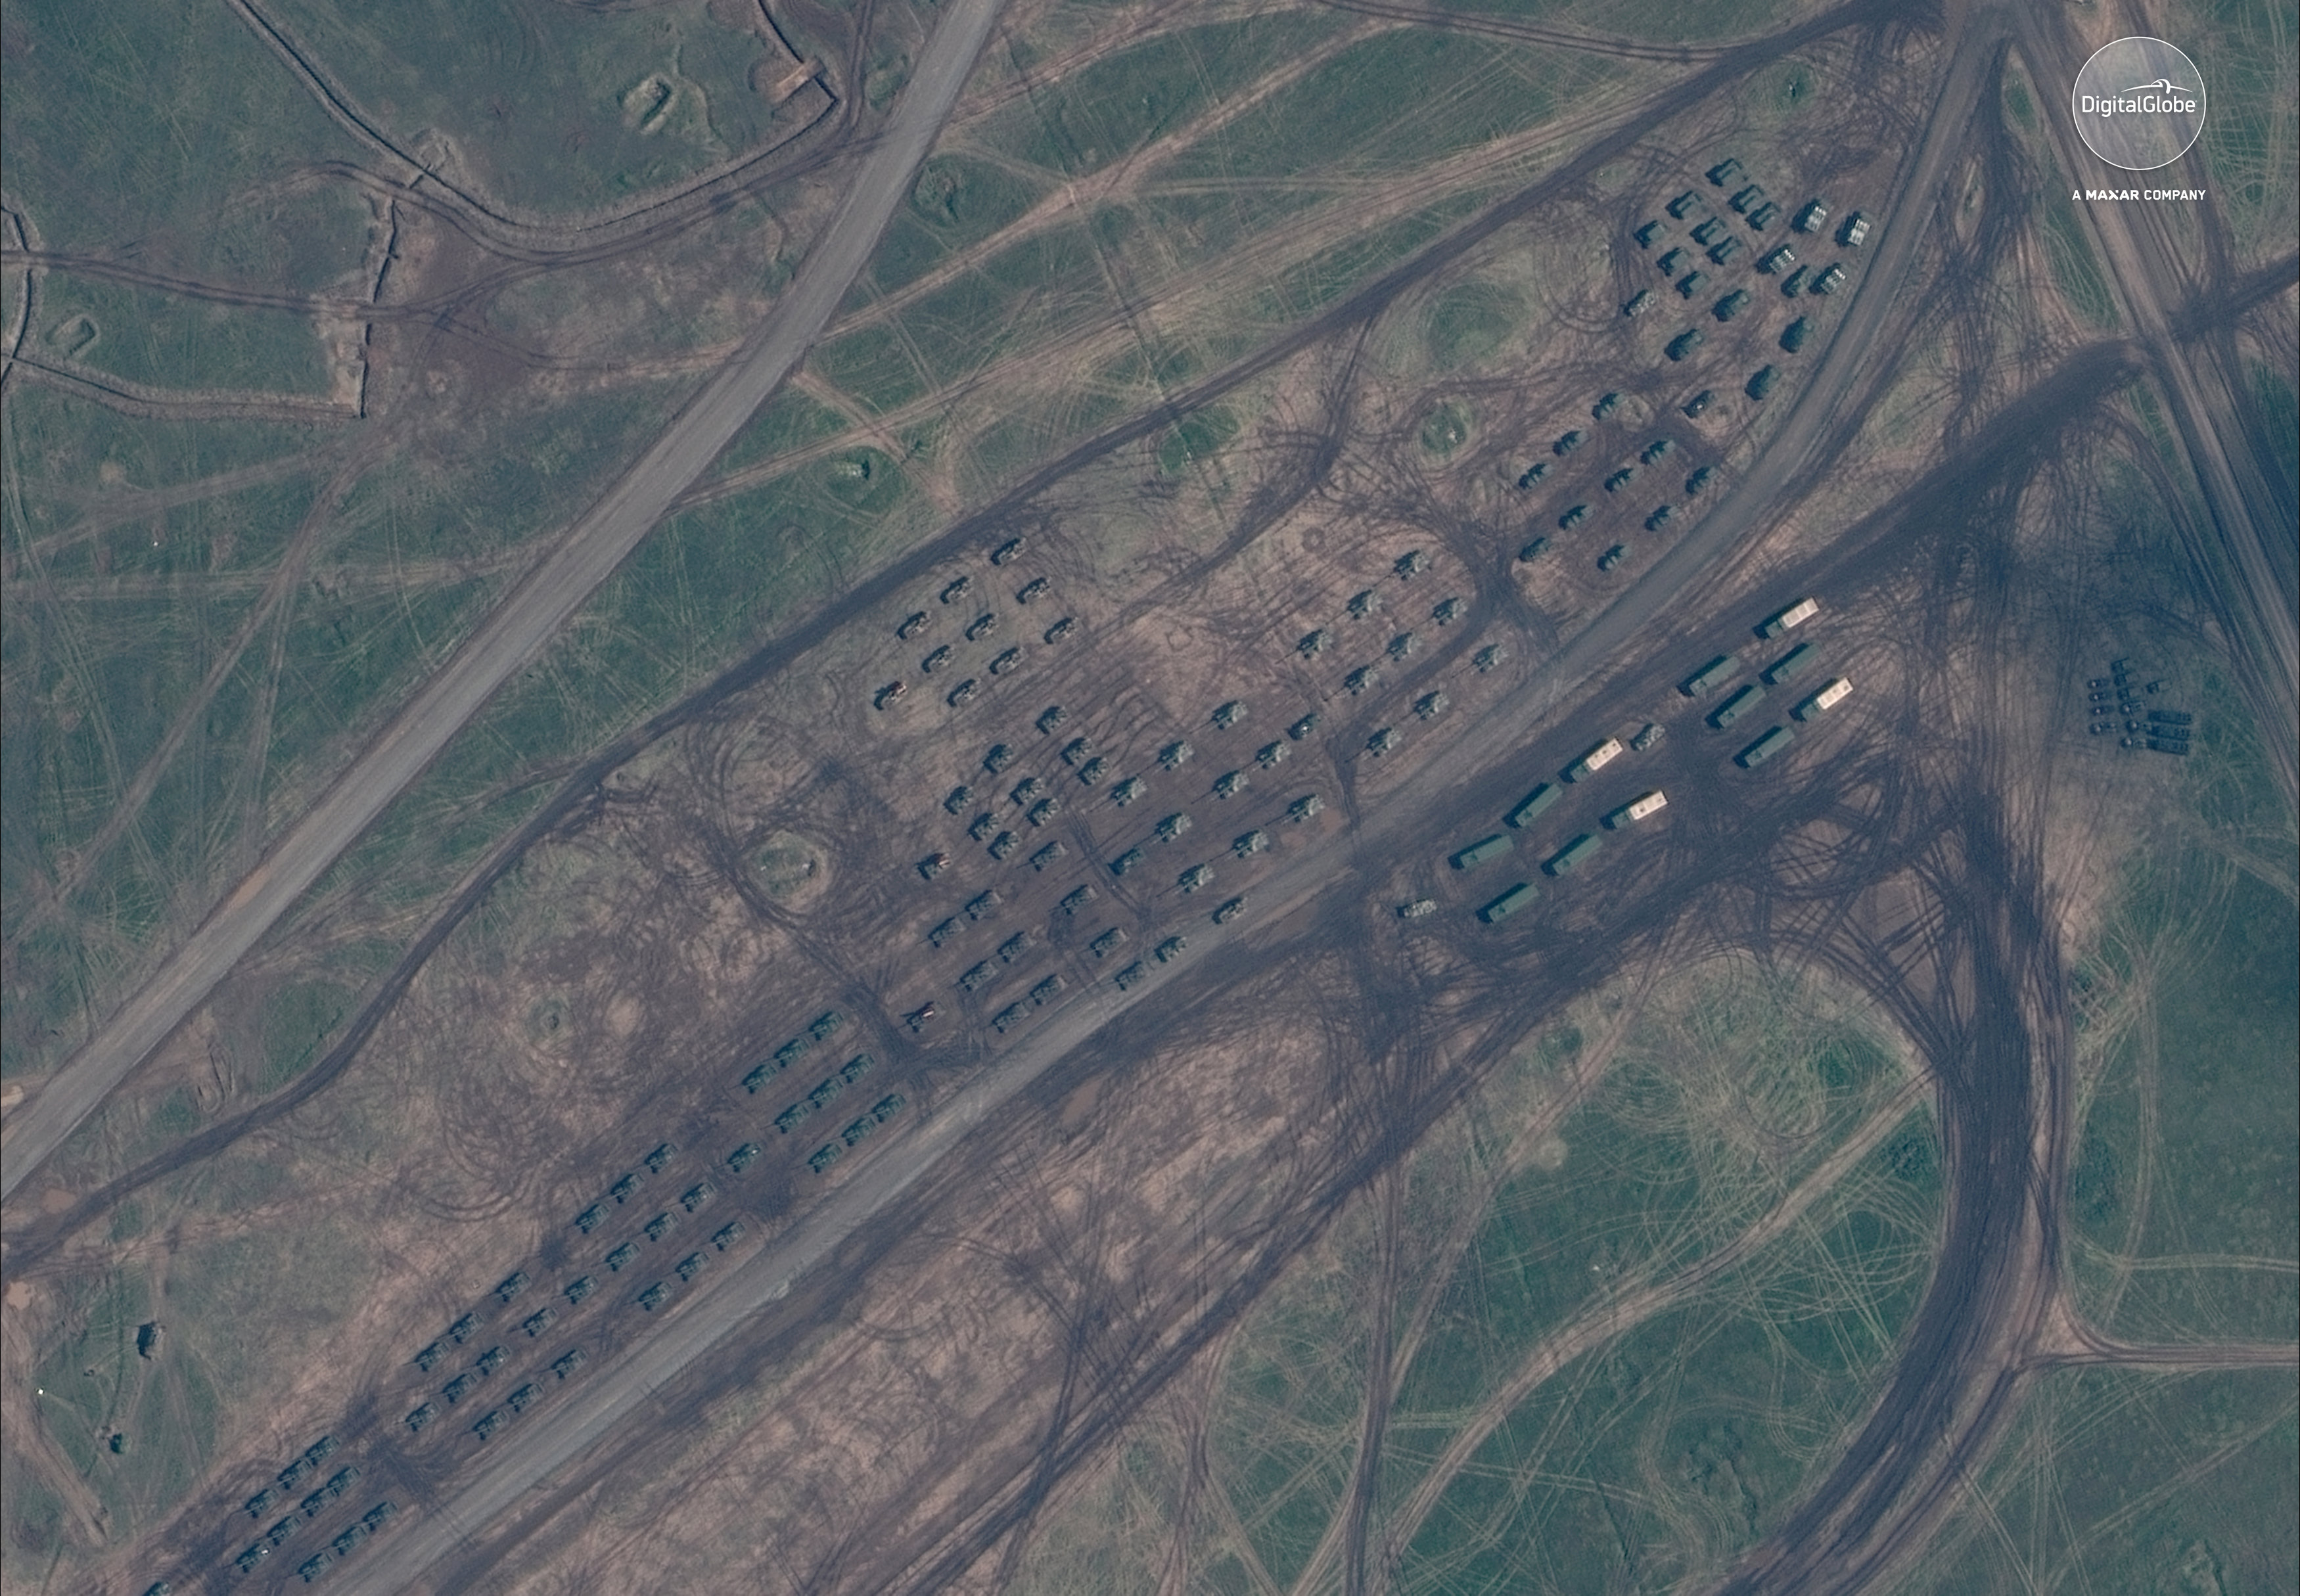 A satellite image of armored vehicles staging during the Russian military exercise known as Vostok 2018, conducted at the Tsugol training area in eastern Russia, September 13, 2018. Satellite image ©2018 DigitalGlobe, a Maxar company/Handout via REUTERS